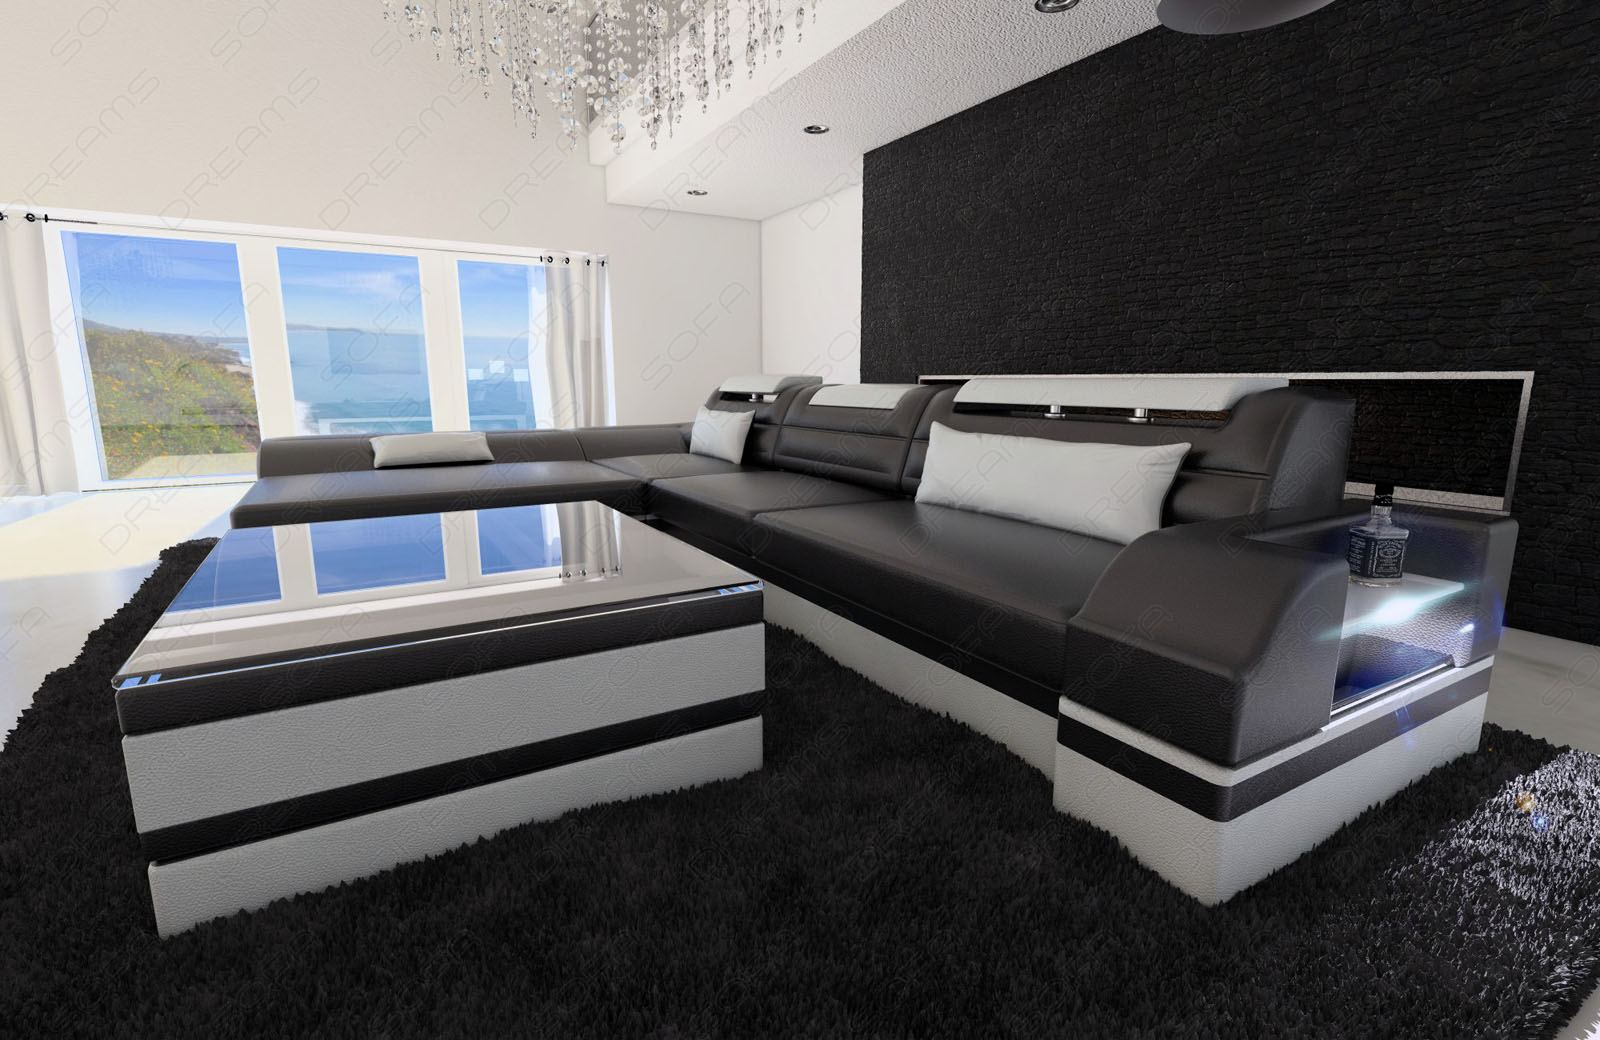 echtledercouch monza l form schwarz weiss ecksofa ottomane led licht lagerware 4055497157023. Black Bedroom Furniture Sets. Home Design Ideas